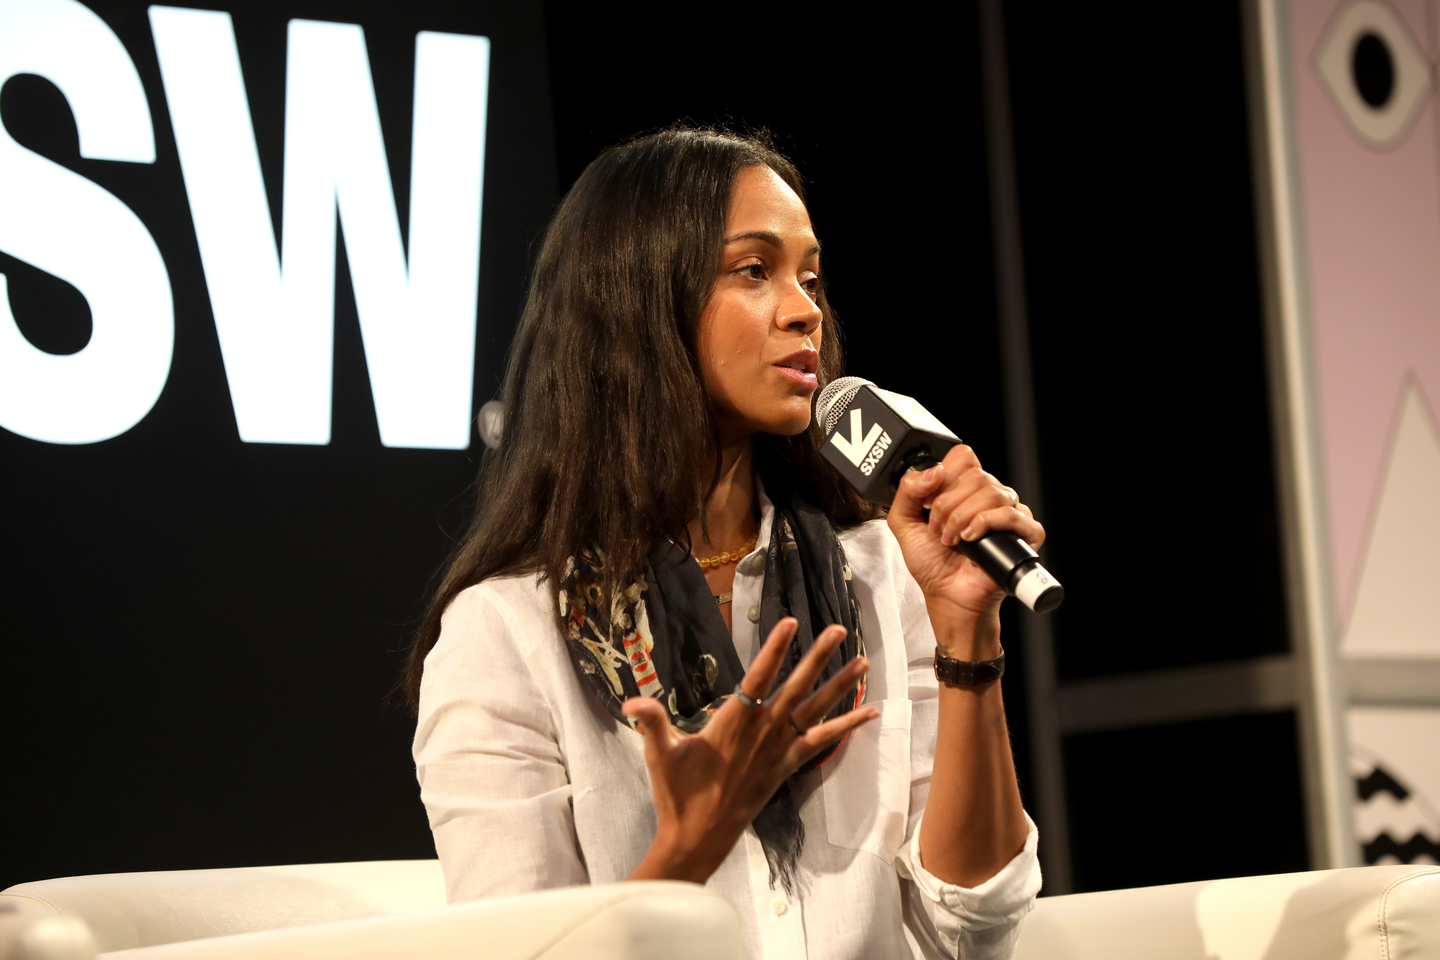 Zoe Saldana speaks onstage at her Featured Session: Changing the Narrative with Zoe Saldana.